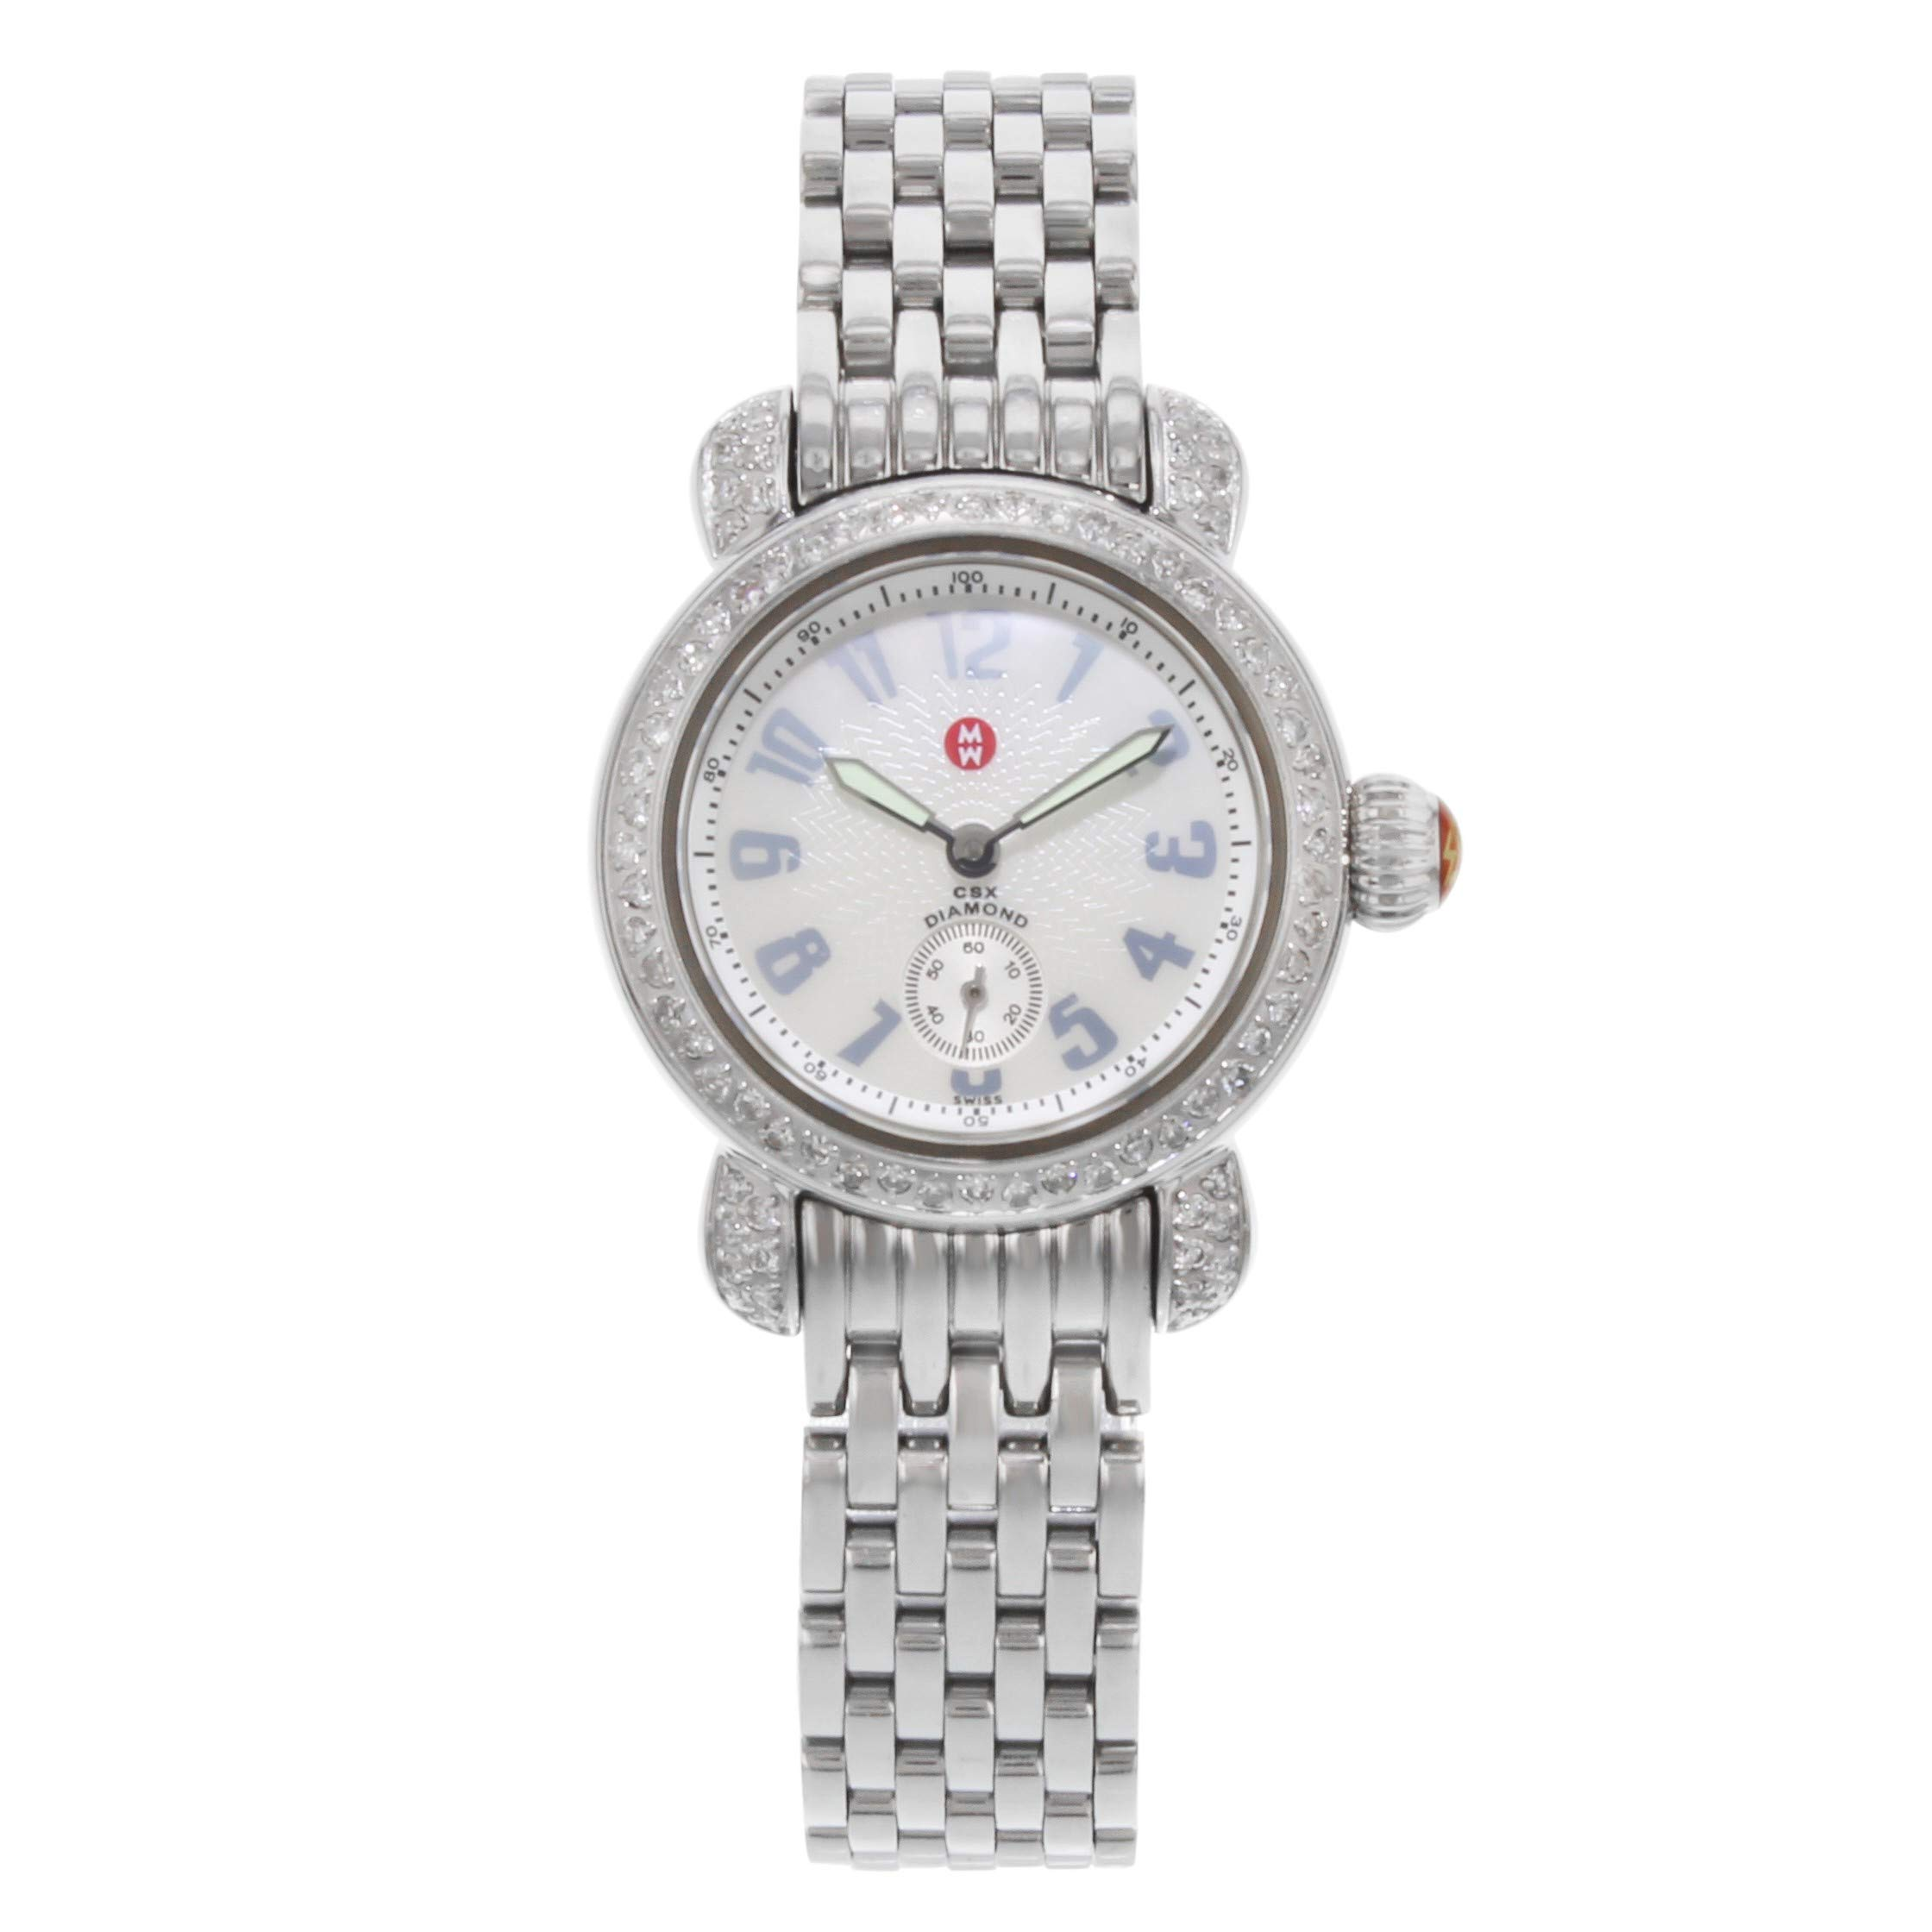 Michele CSX Quartz Female Watch MW03A01 (Certified Pre-Owned)